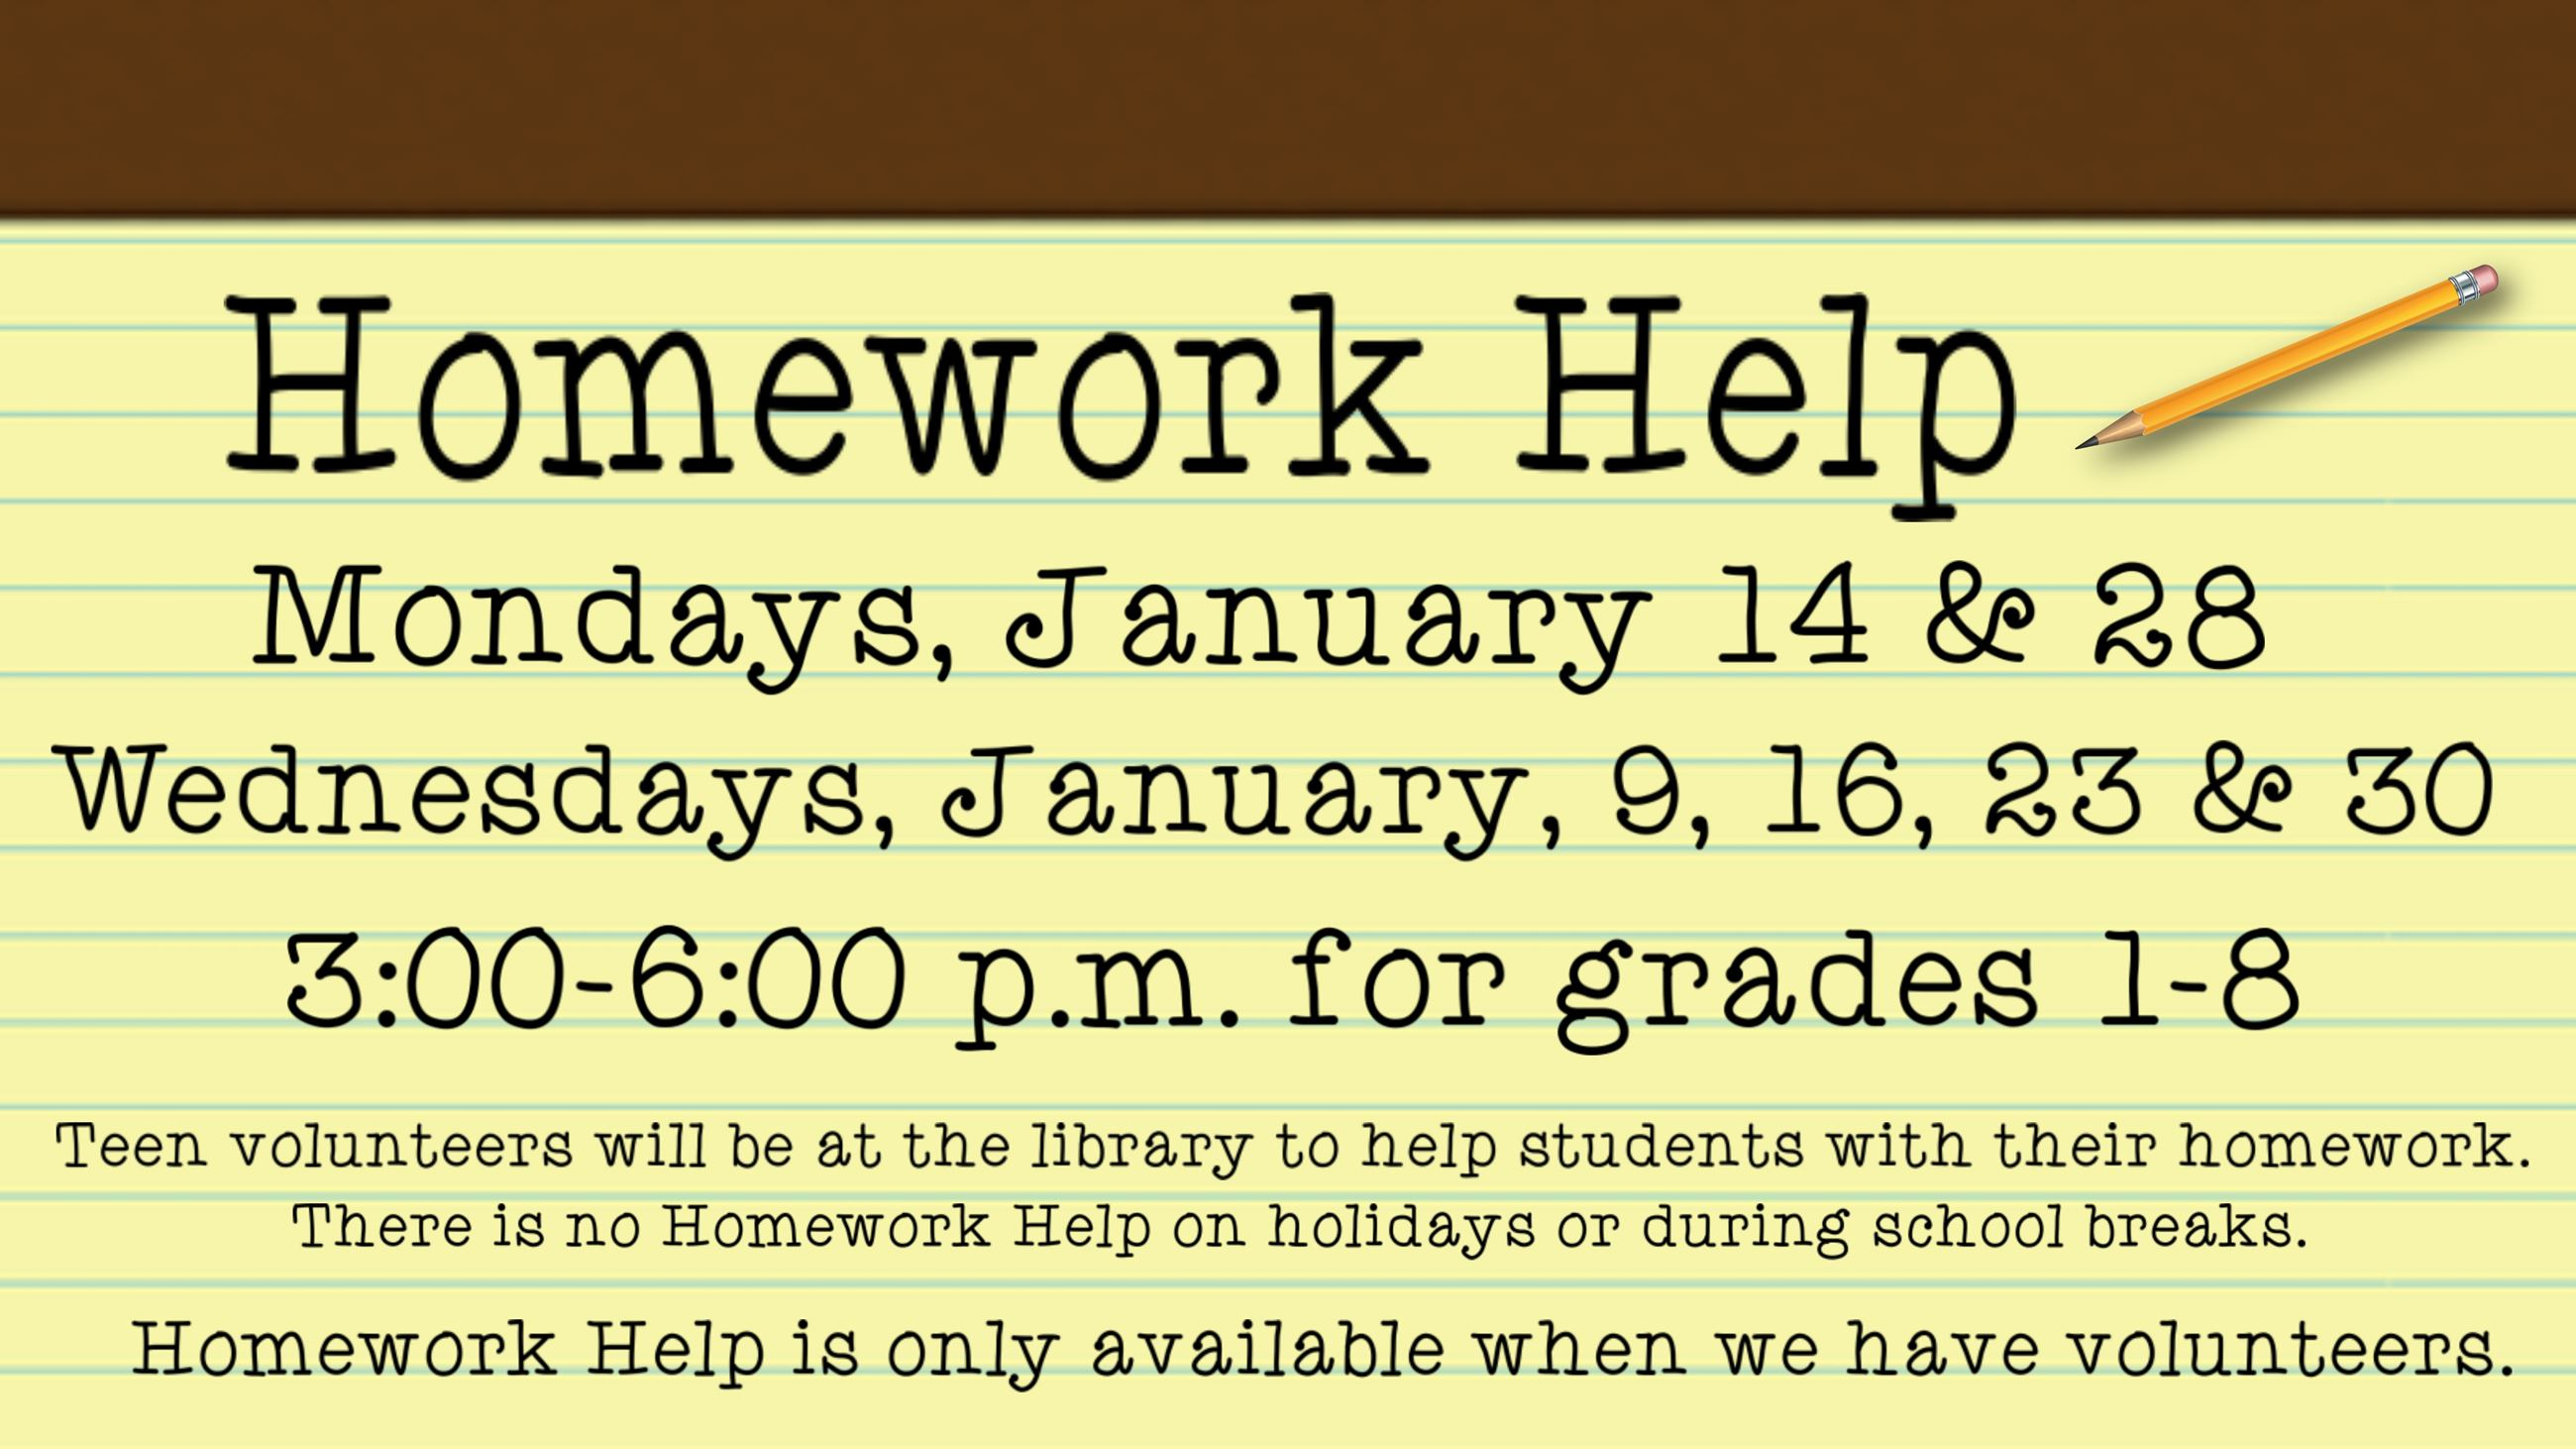 Homework Help. January 9, 14, 16, 23, 28, & 30. 3 to 6 p.m. Grades 1 thru 8.